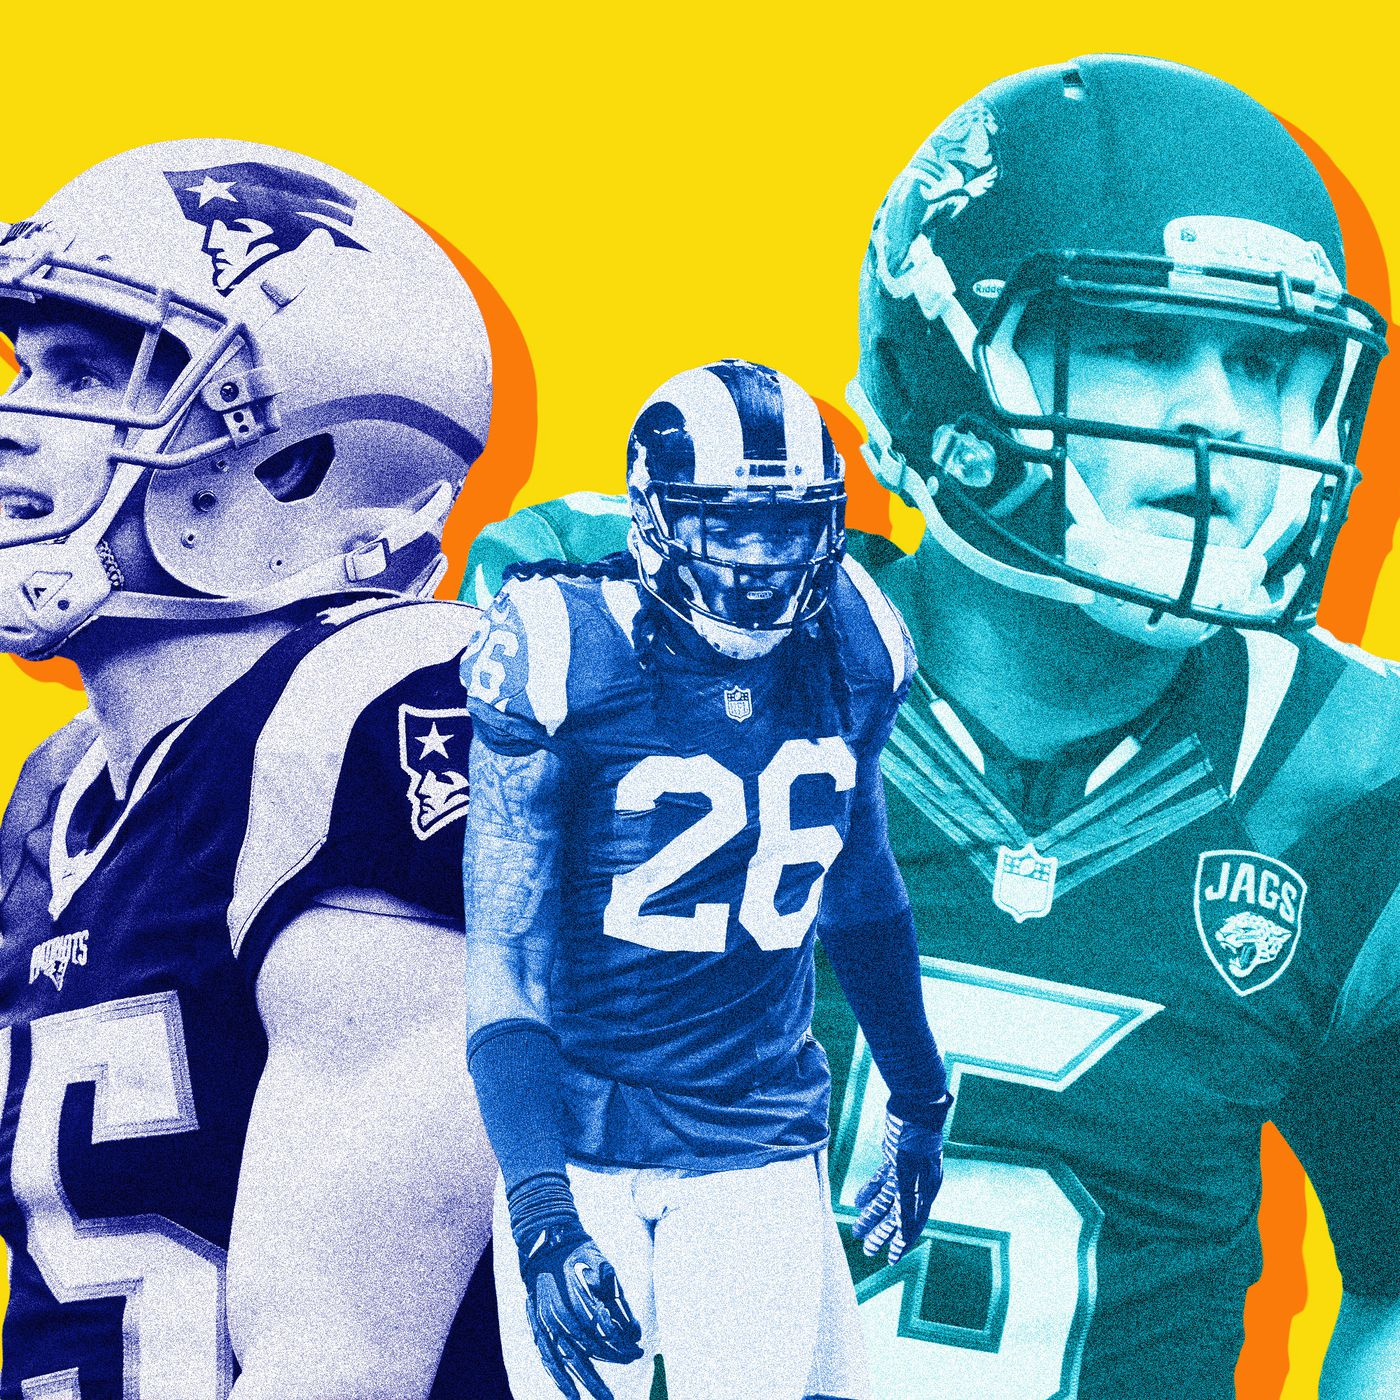 separation shoes 1cbca 995ed Which Units Could Doom Some of the NFL's Top Contenders ...